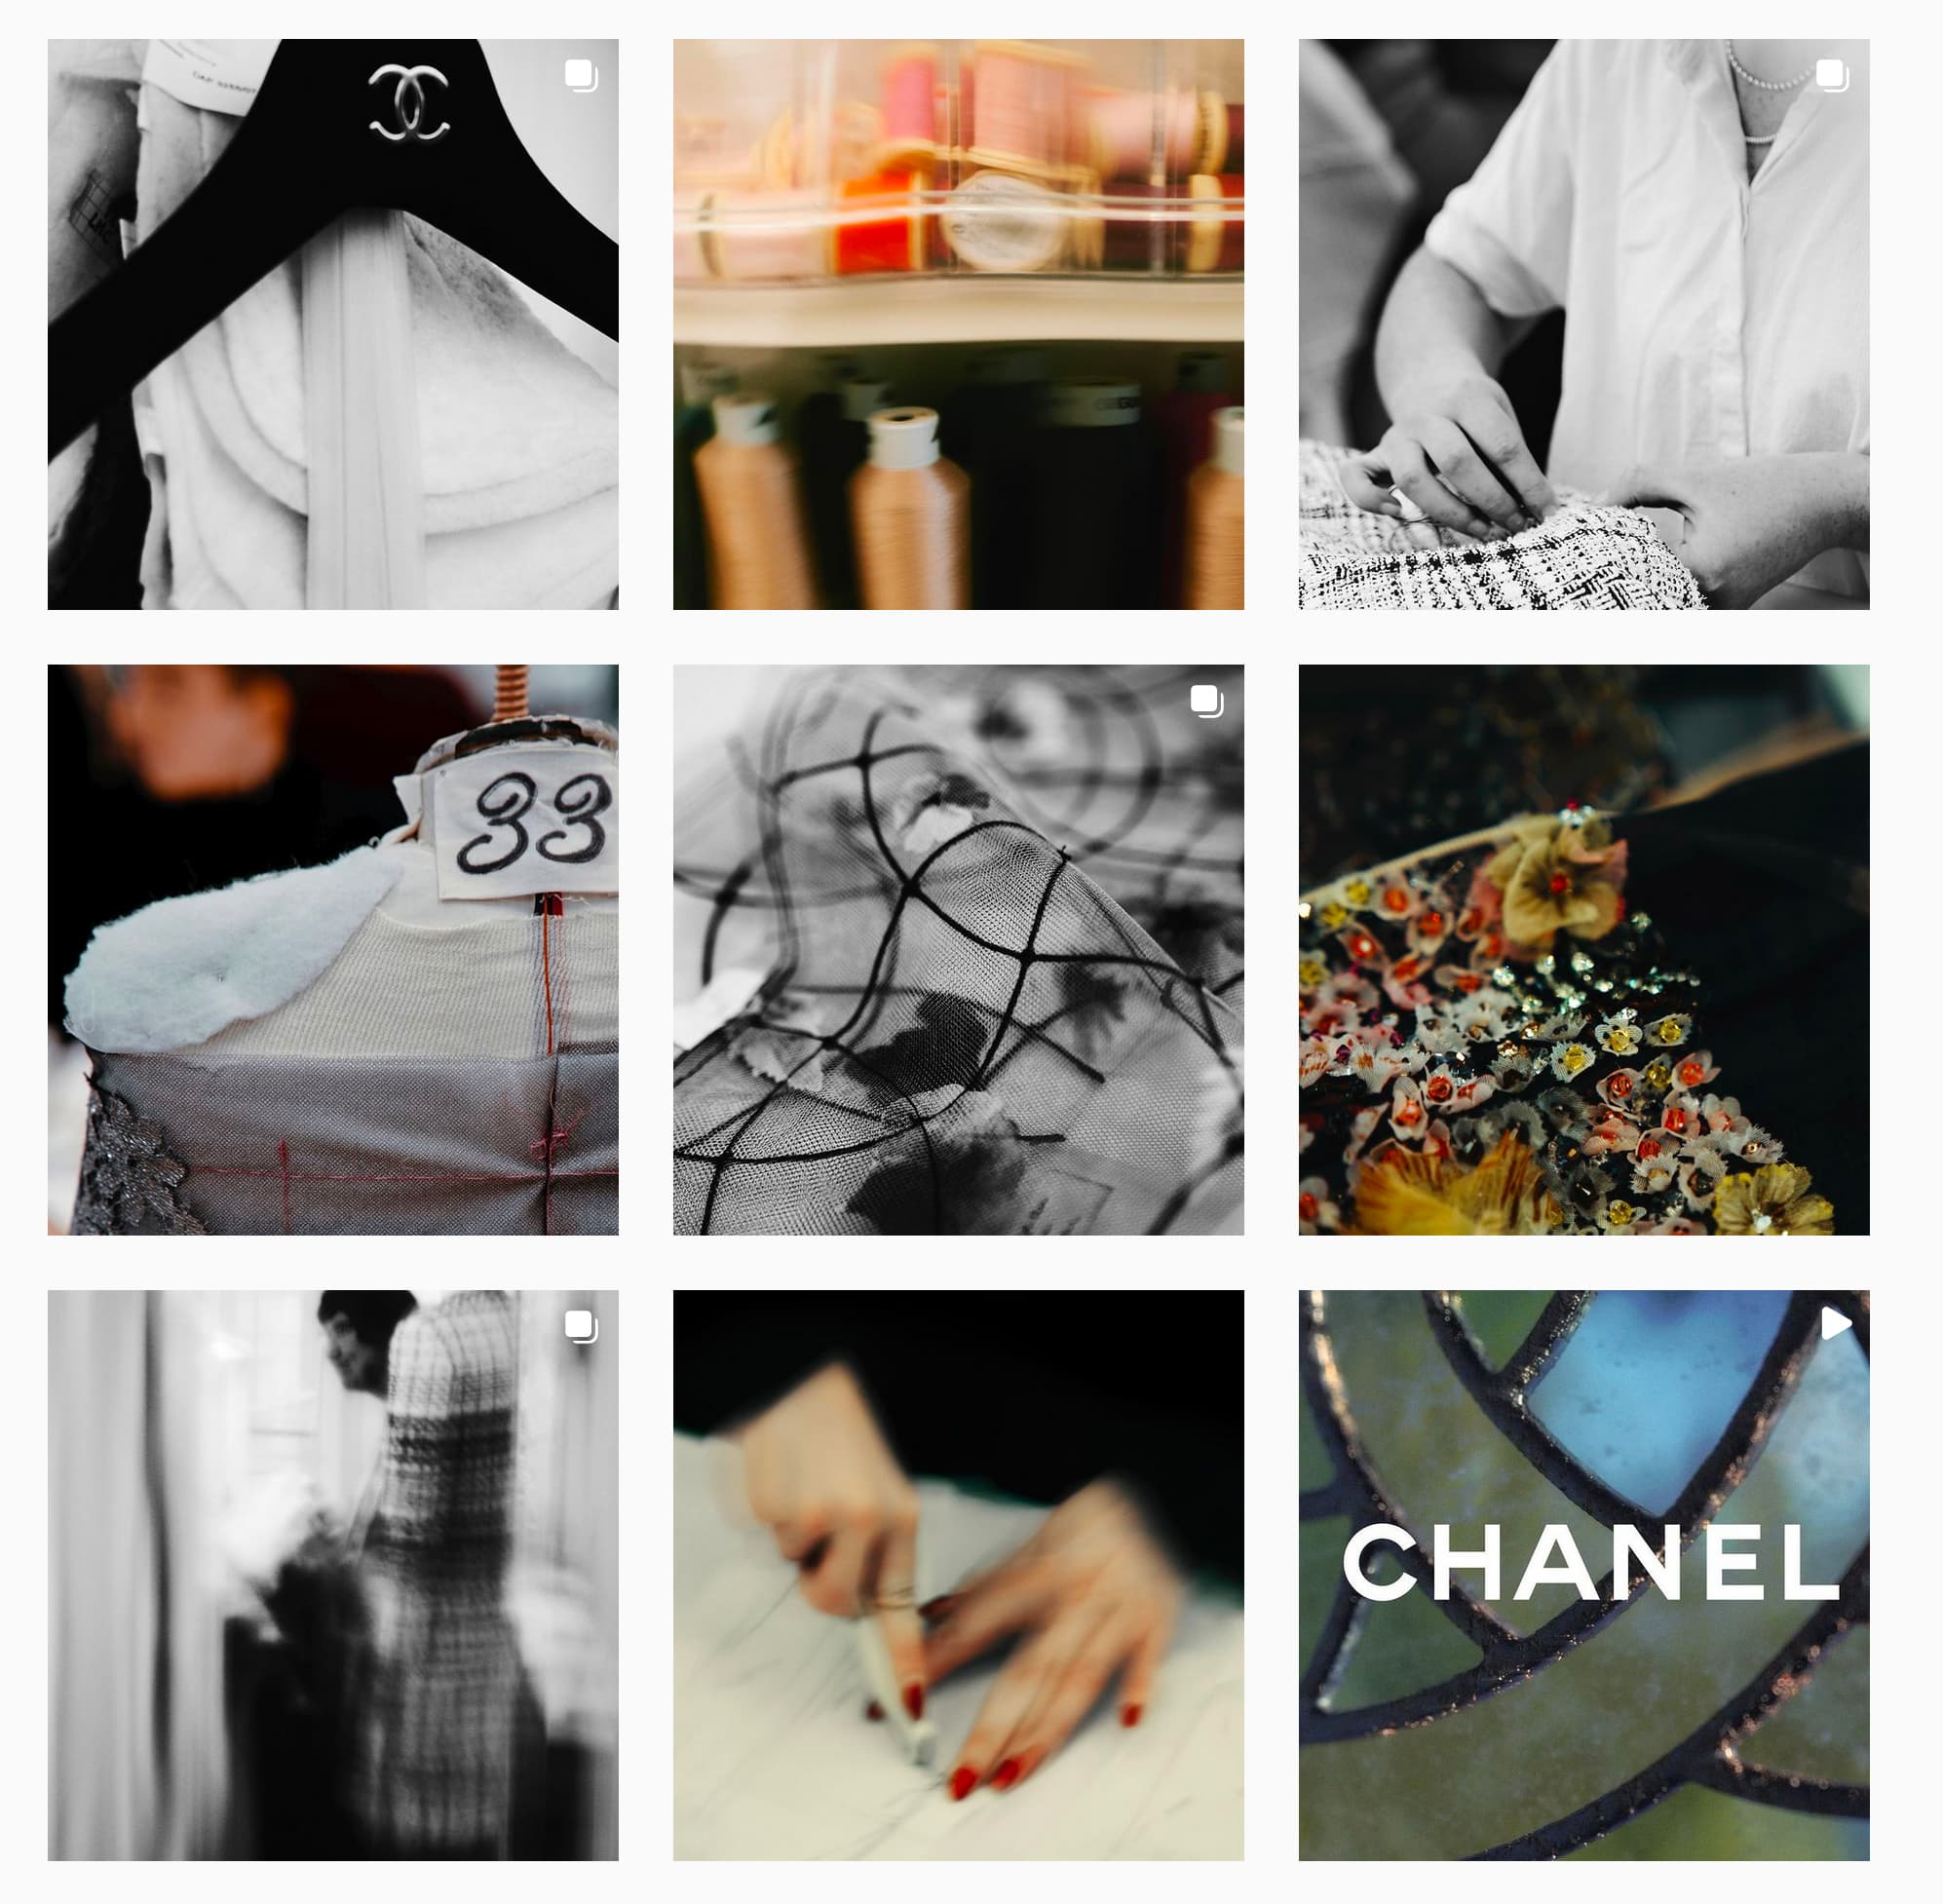 Teasers As The New Grand Rituals of Fashion Shows